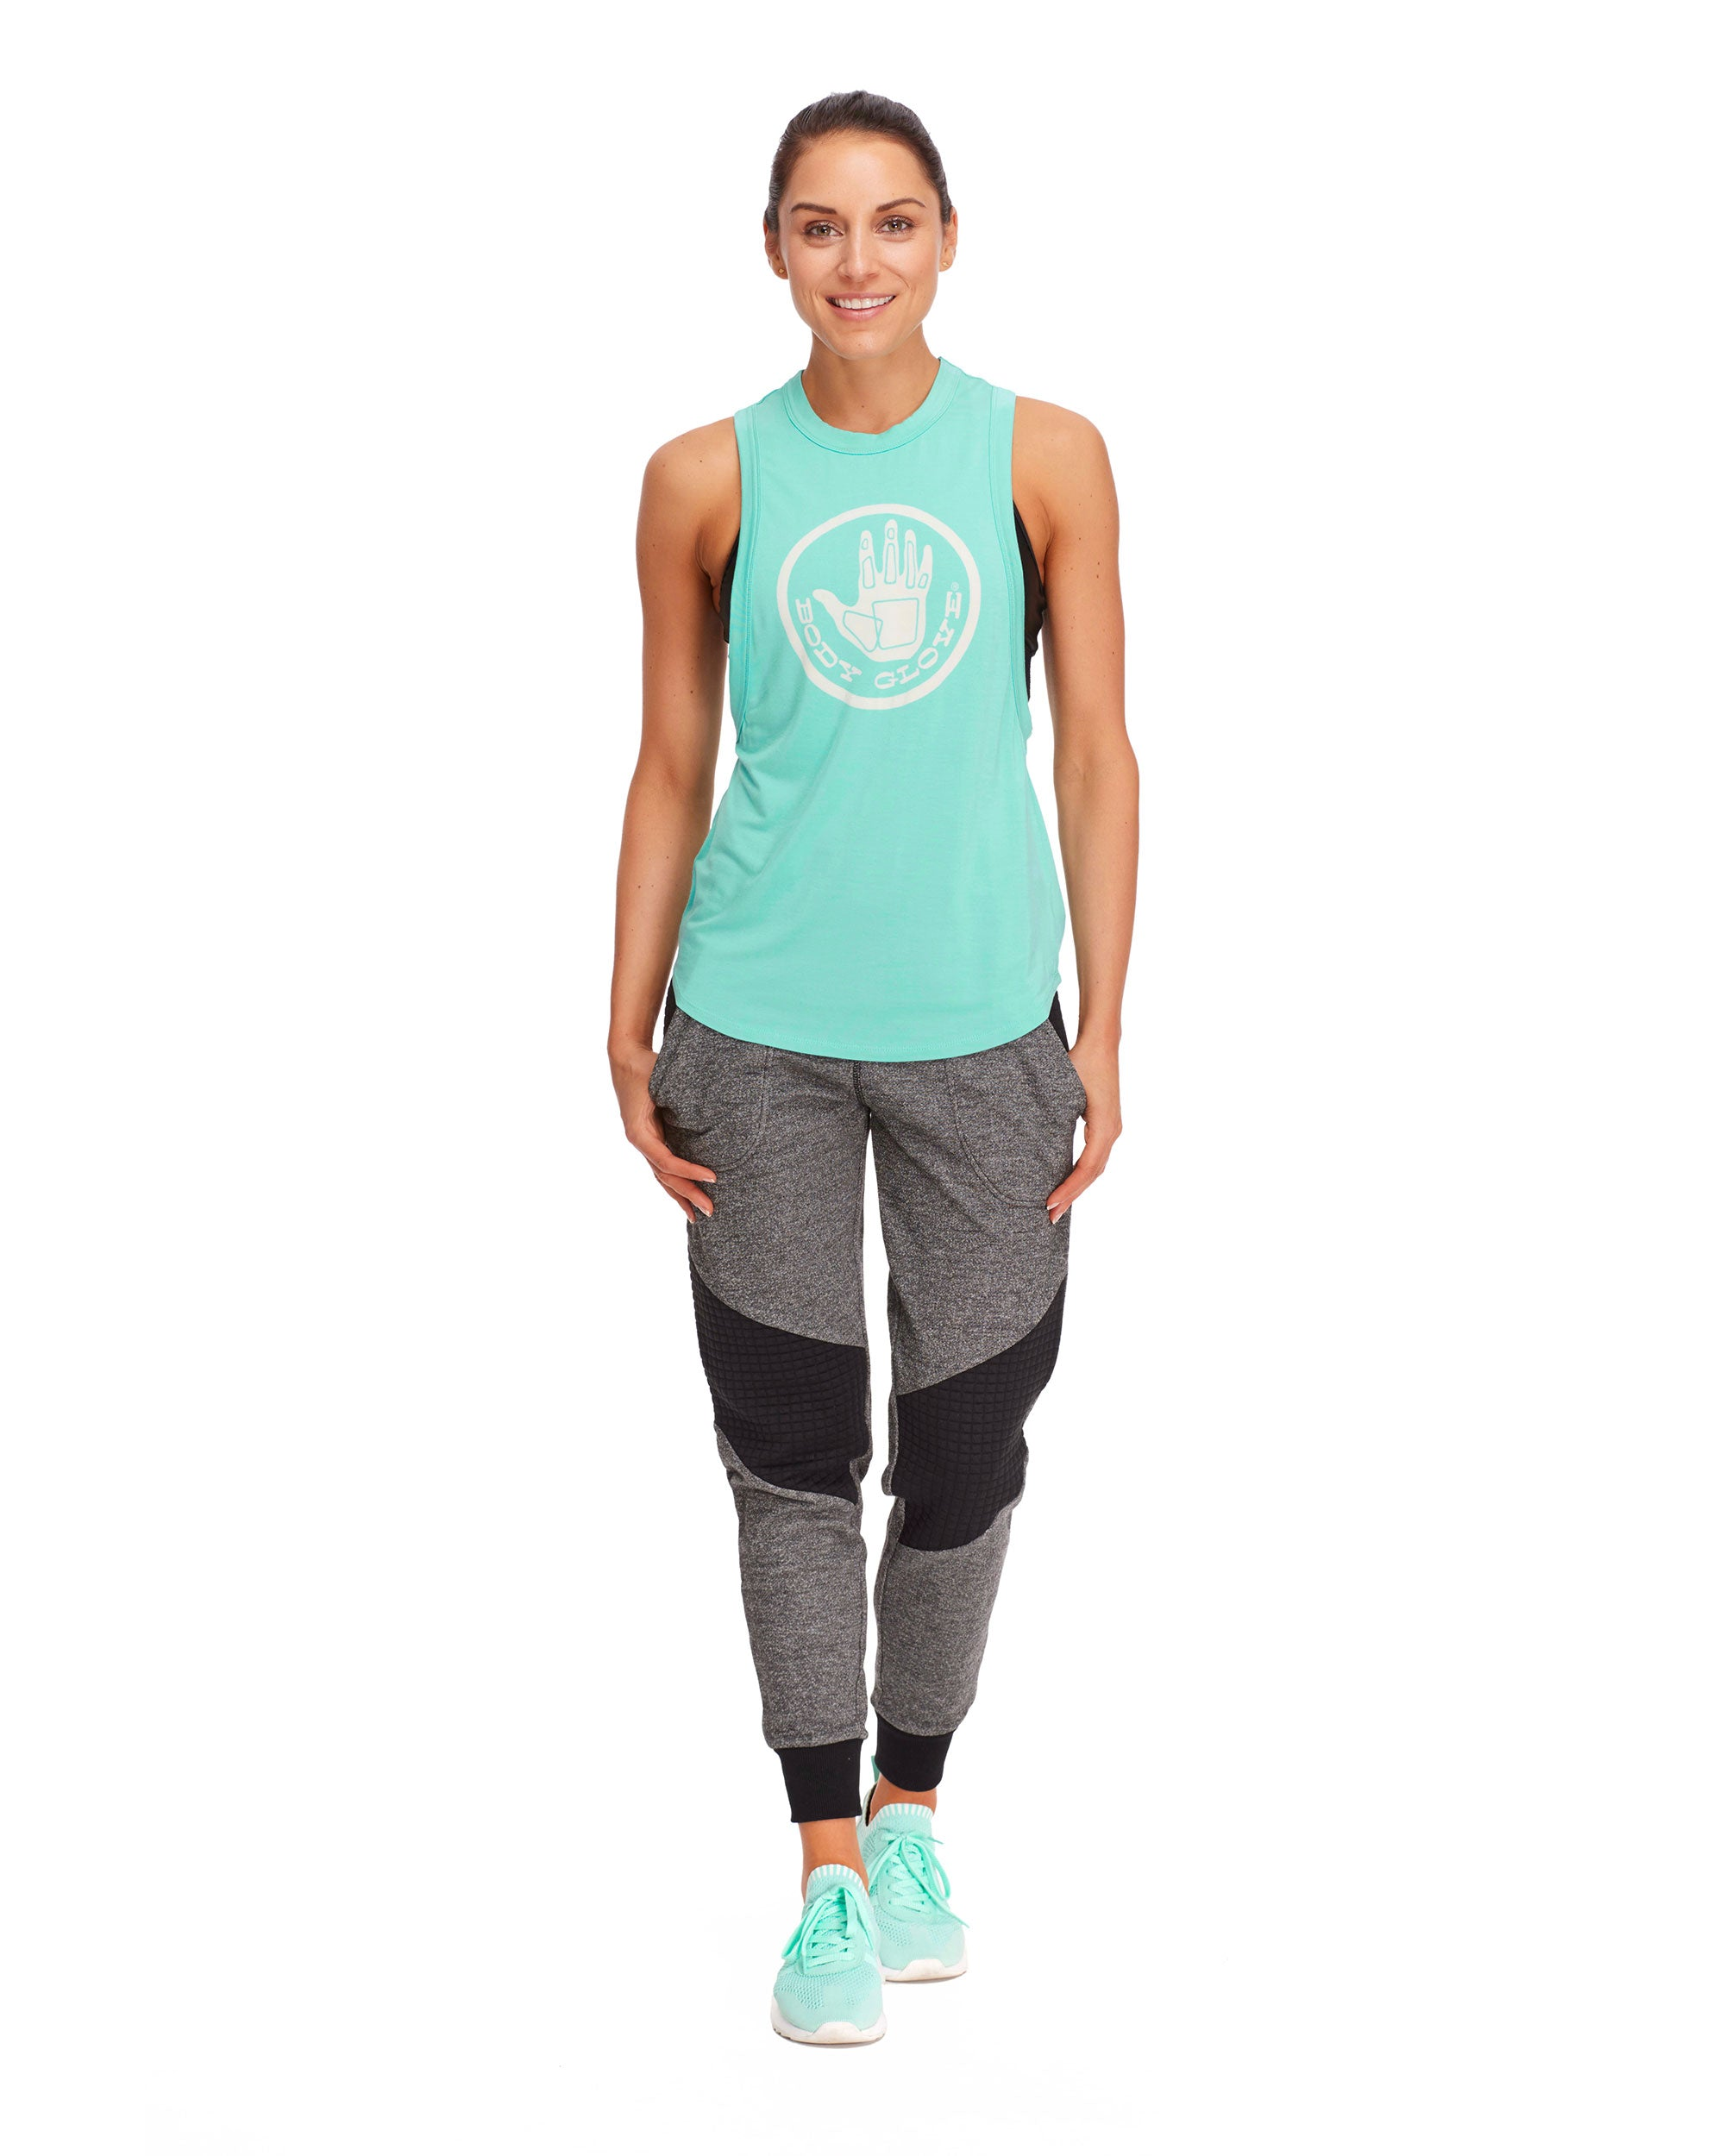 Nora Relaxed-Fit Muscle Tank Top - Seafoam